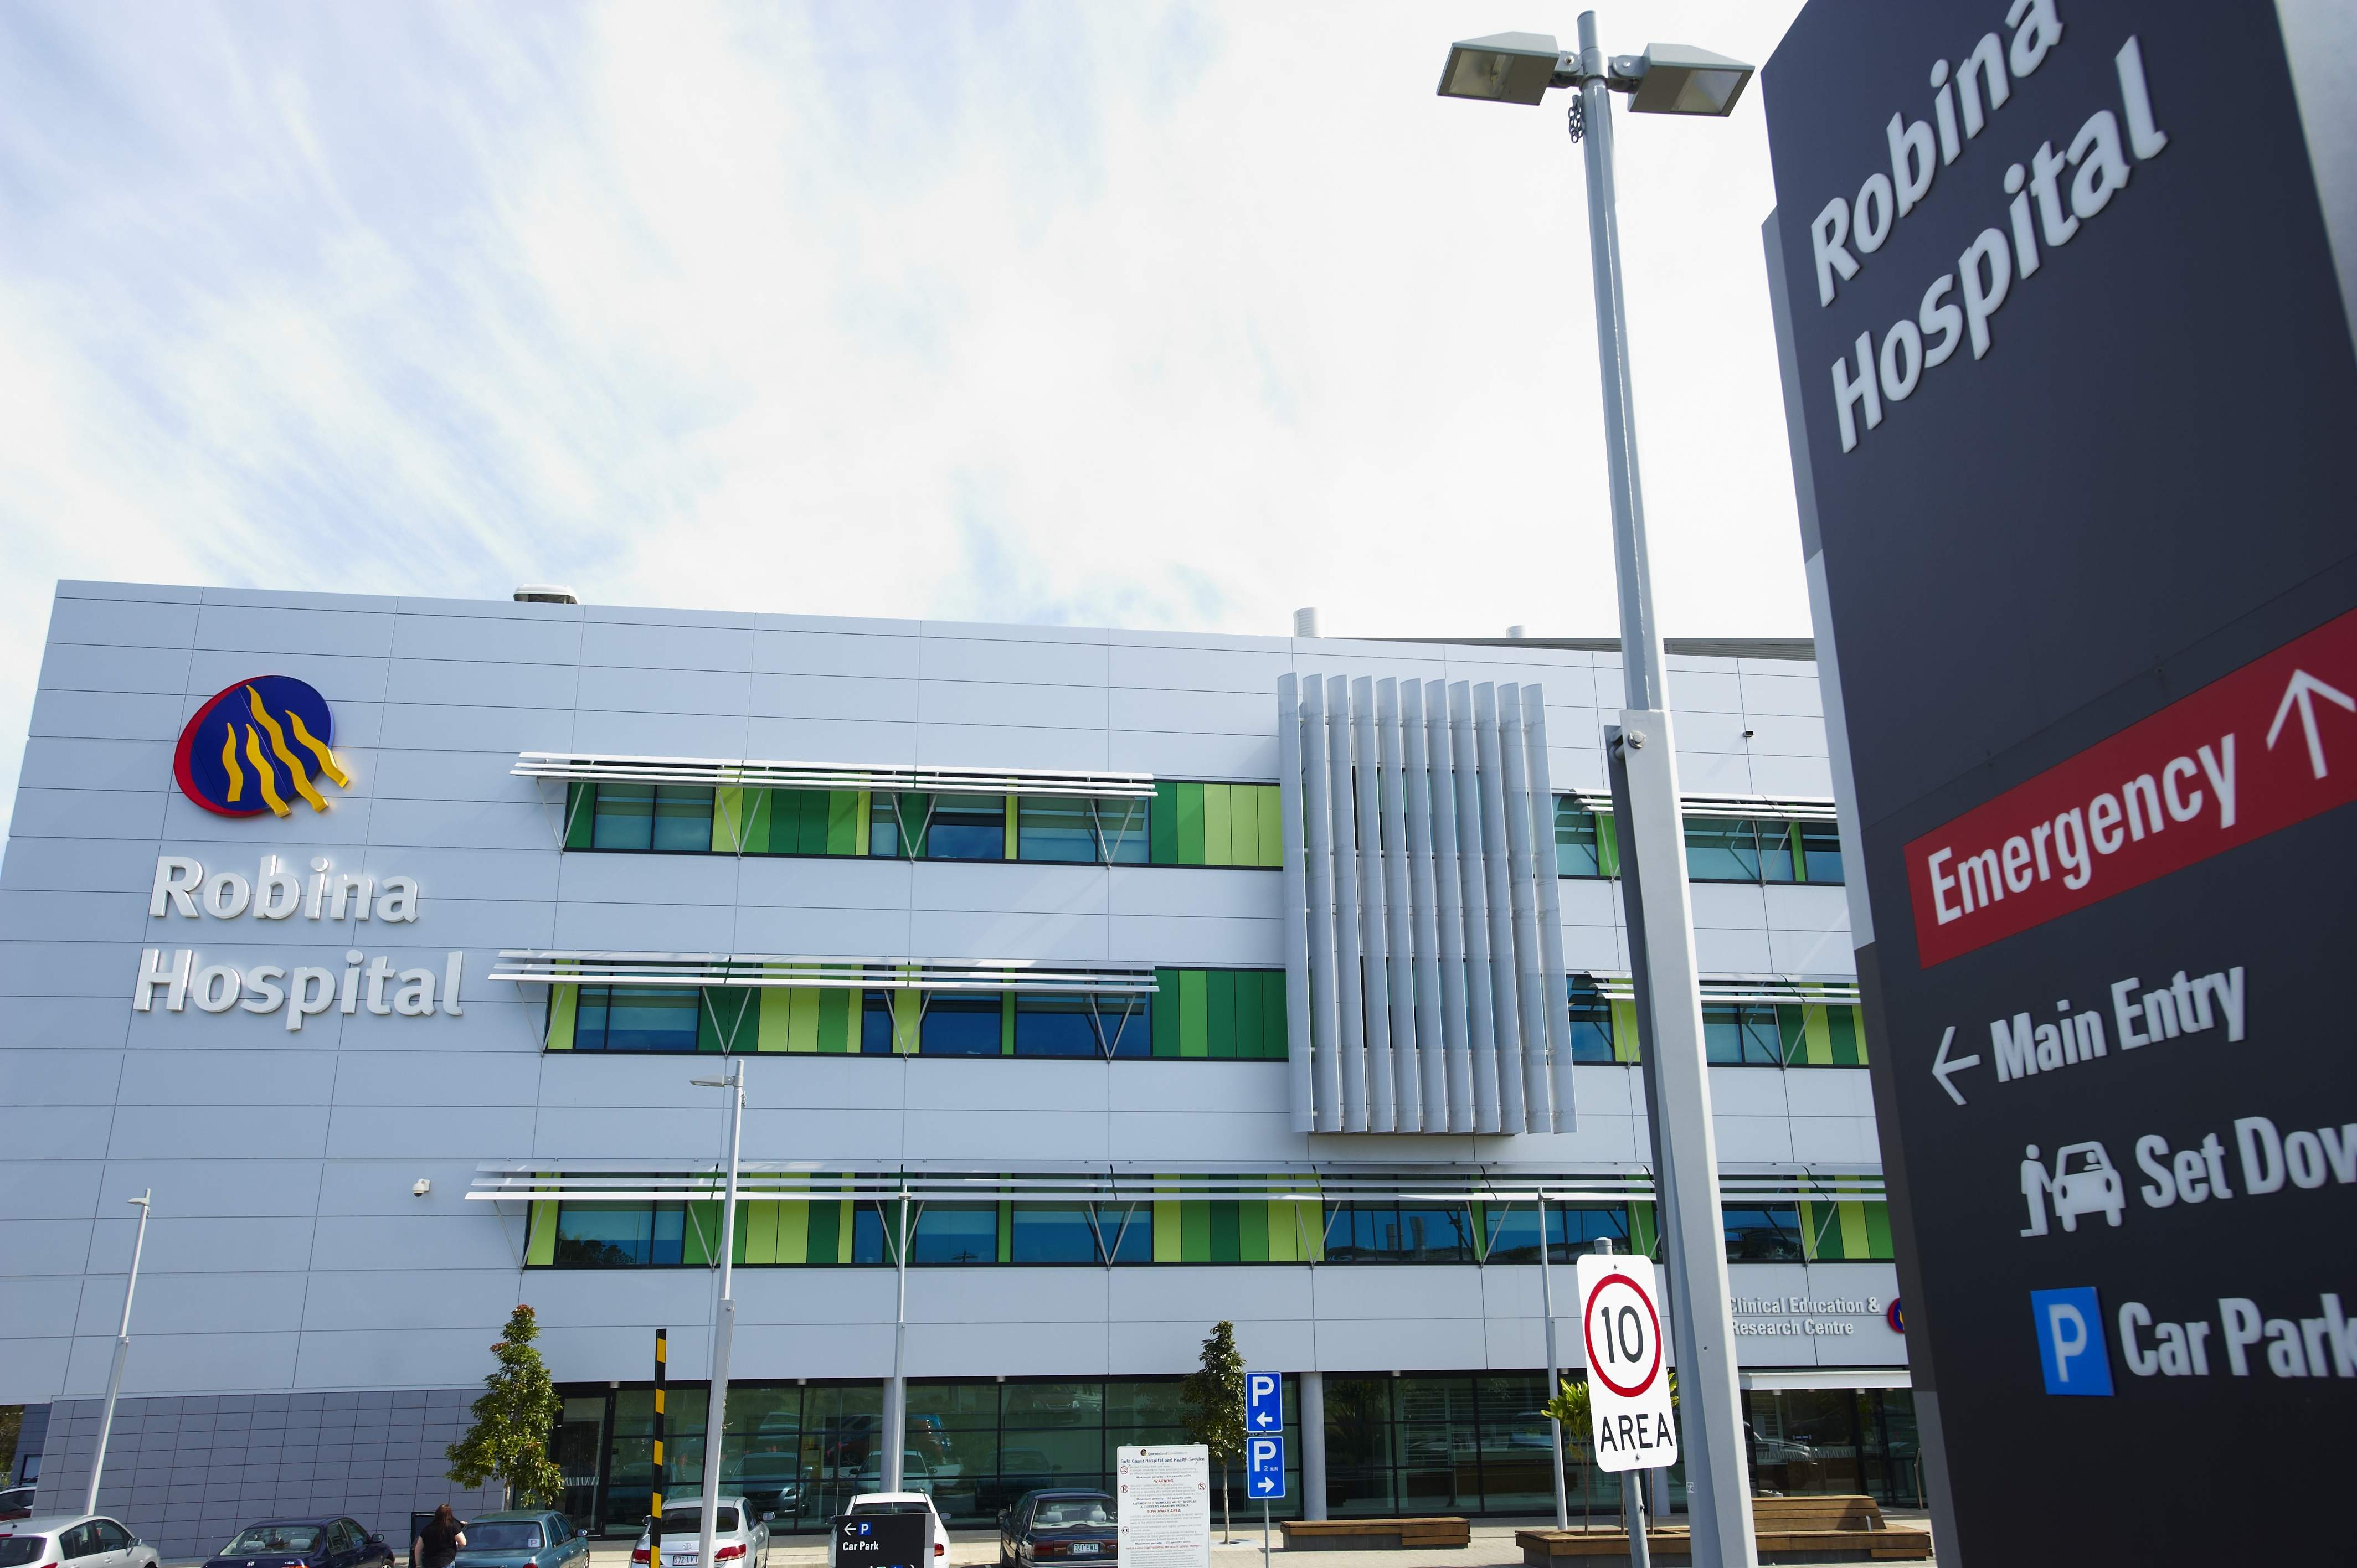 The outside of a multi storey building with signage showing Robina Hospital and direction signs